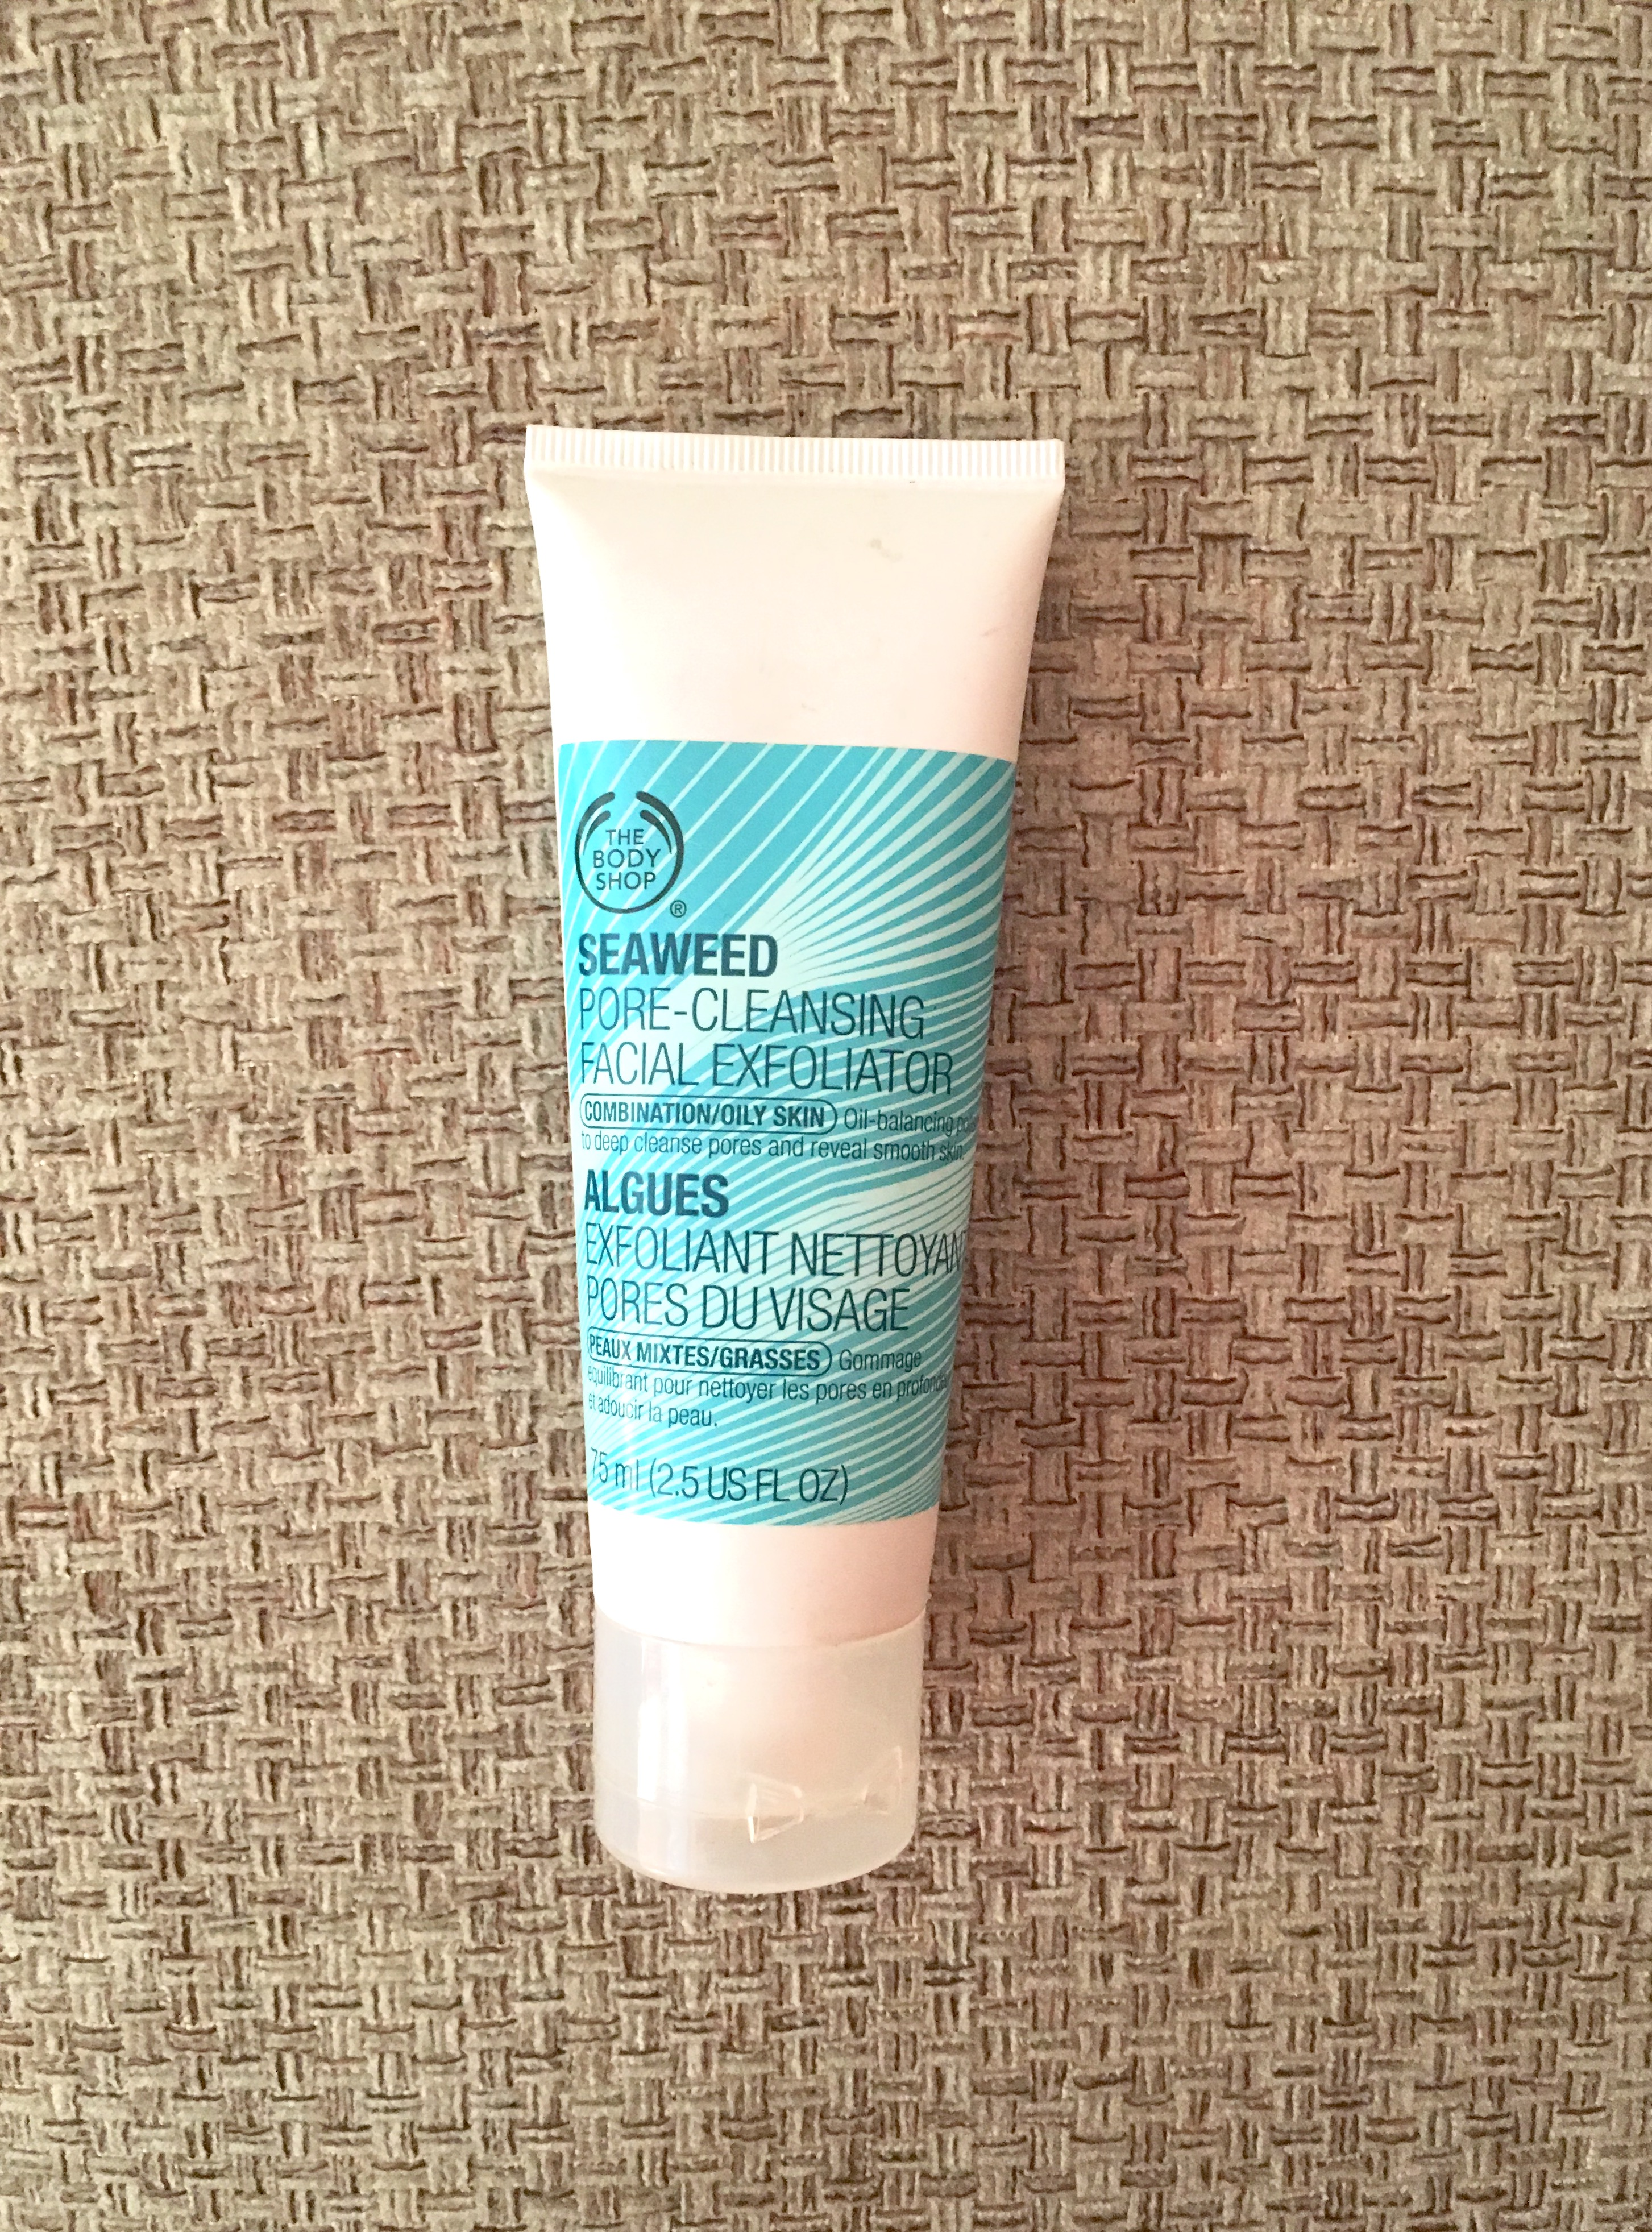 the body shop seaweed pore cleansing facial exfoilator, body shop seaweed exfoilator, seaweed scrub, seaweed